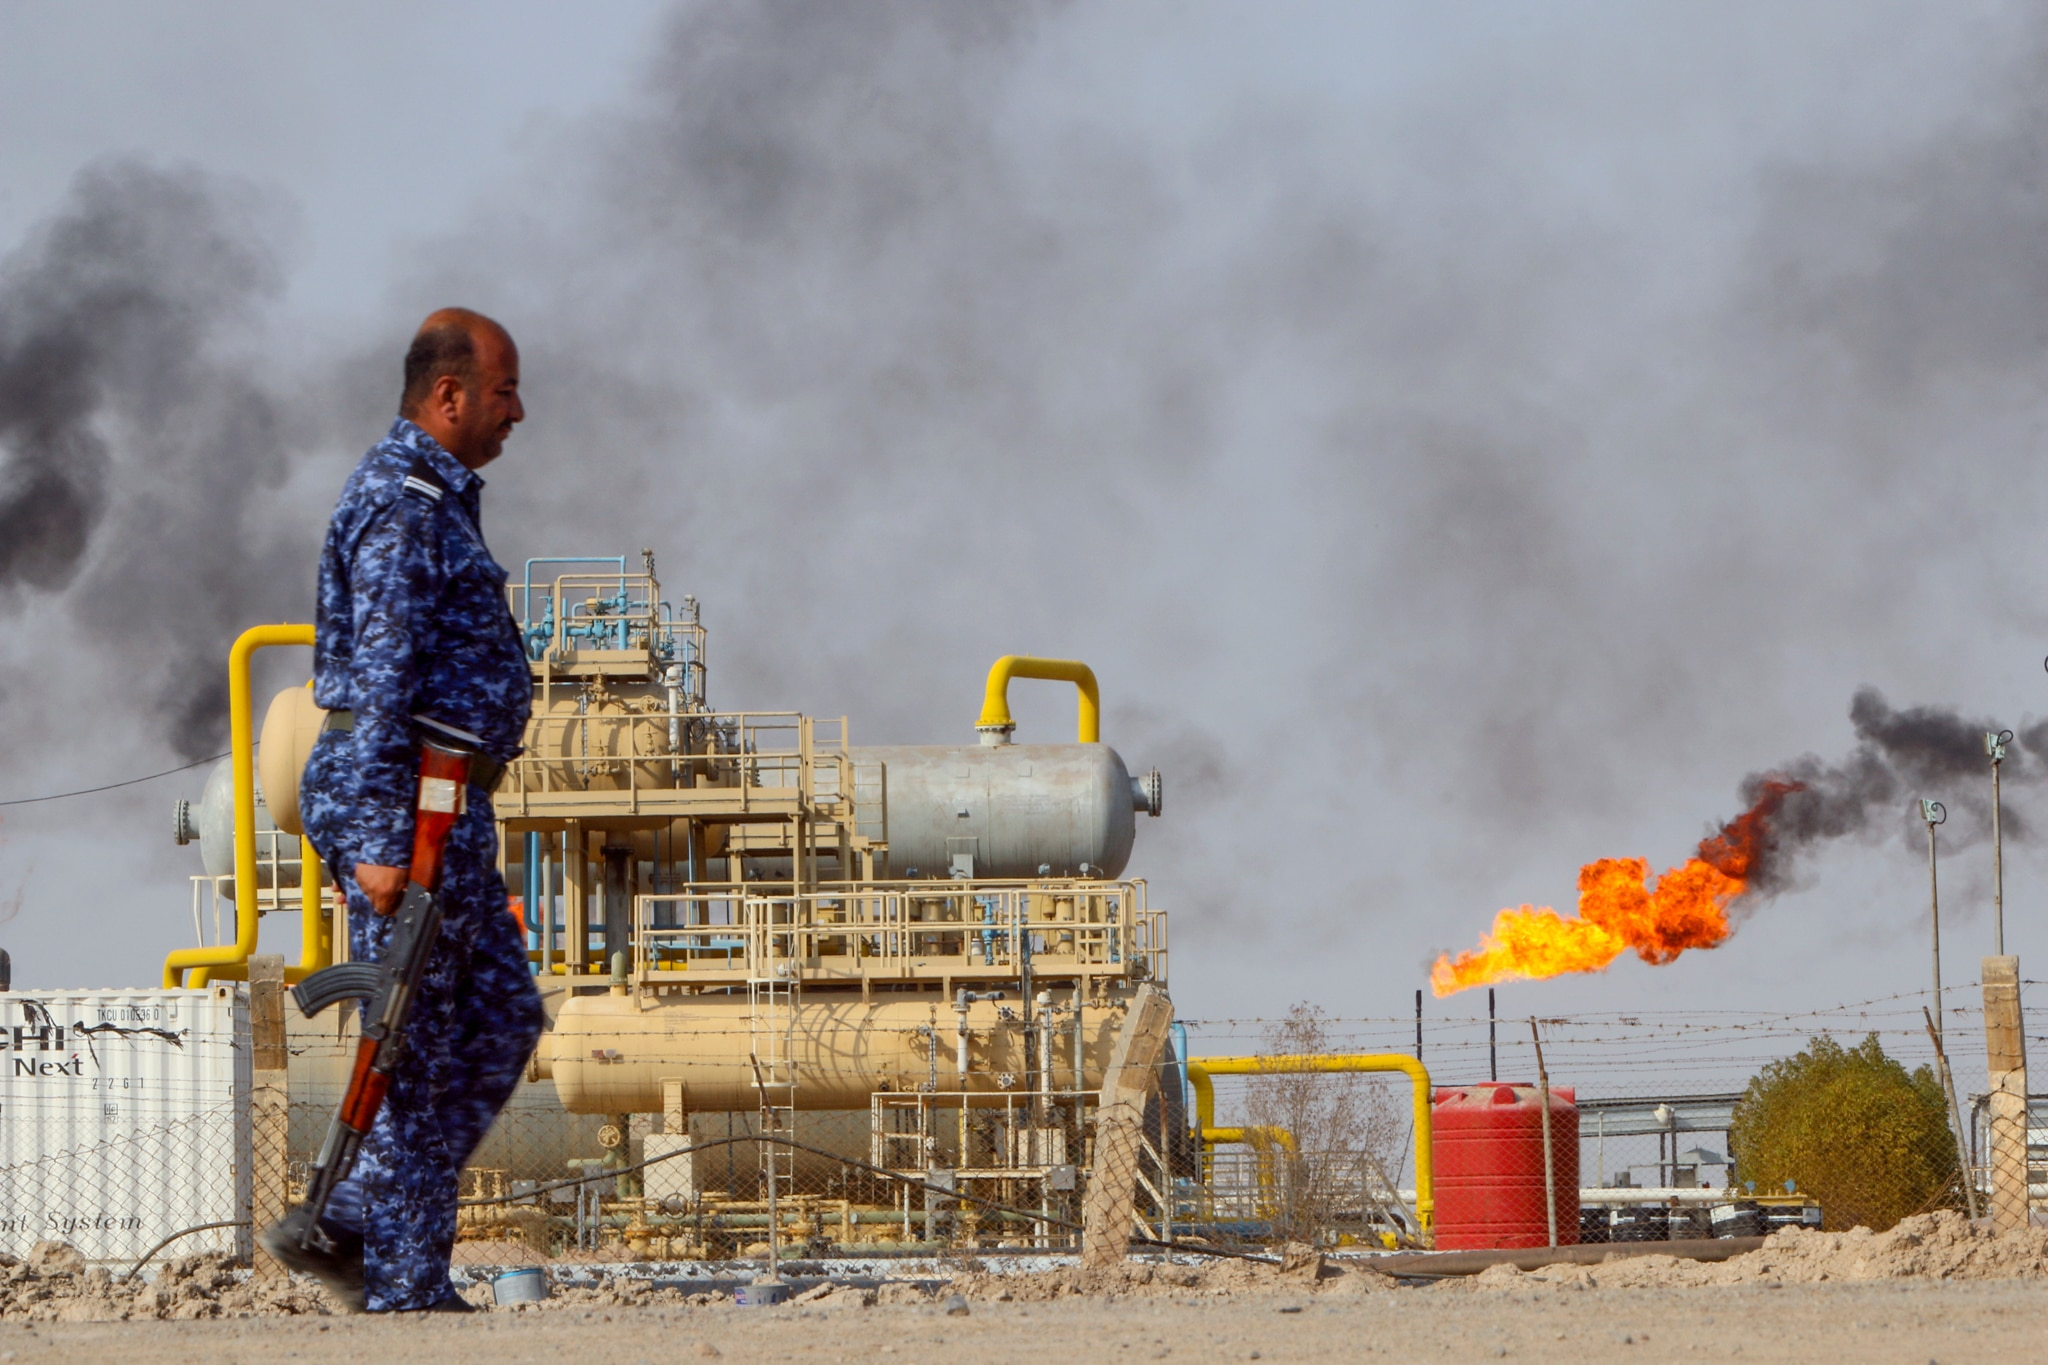 Police officer with rifle walking past oil processing structure and flaming oil well (© Essam Al-Sudani/Reuters)